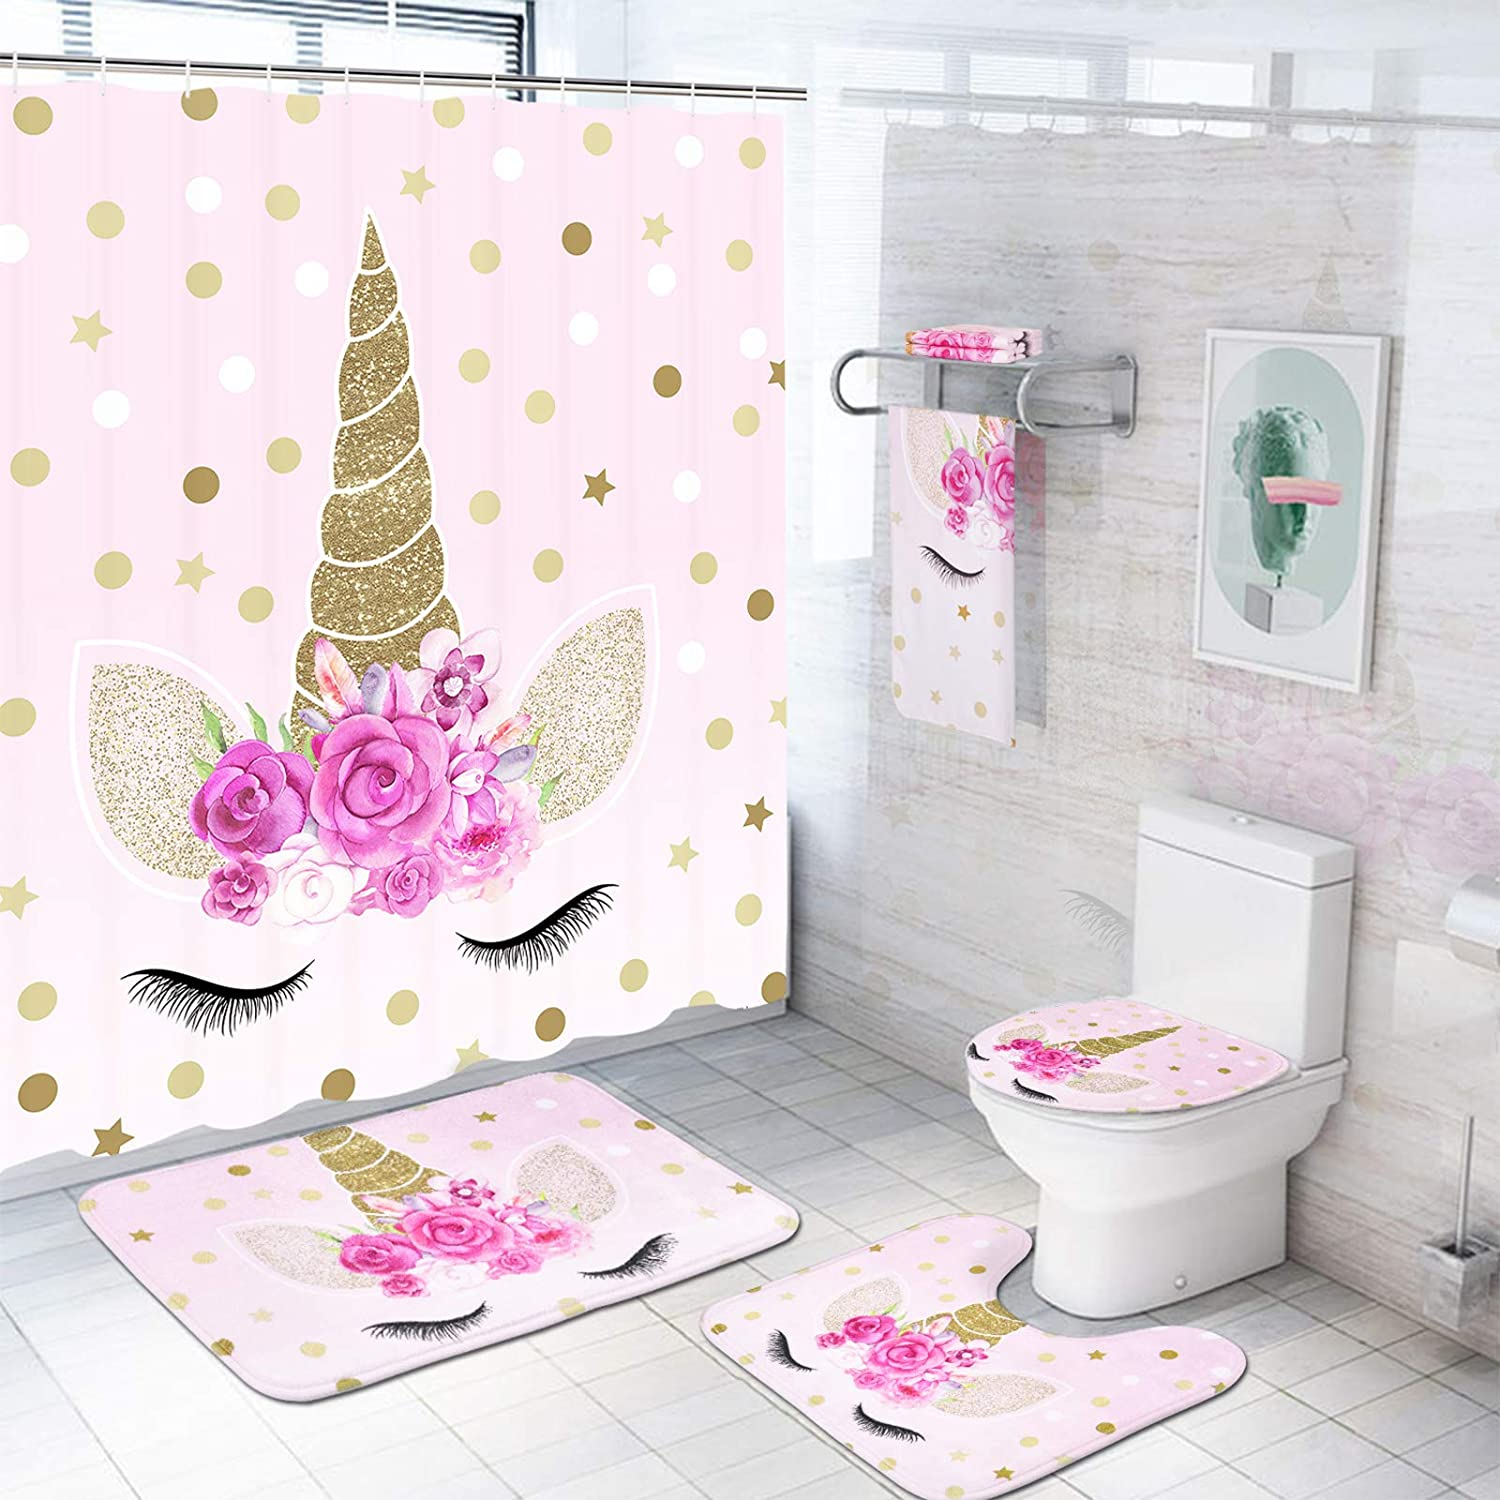 7 Pcs Unicorn Shower Curtain Sets with Rugs and Bath Towel, Non-Slip Rug, Toilet Lid Cover, Bath Mat and Towel, Pink Cartoon Unicorn Bathroom Shower Curtain with 12 Hooks for Kids Girl Bathroom, Large